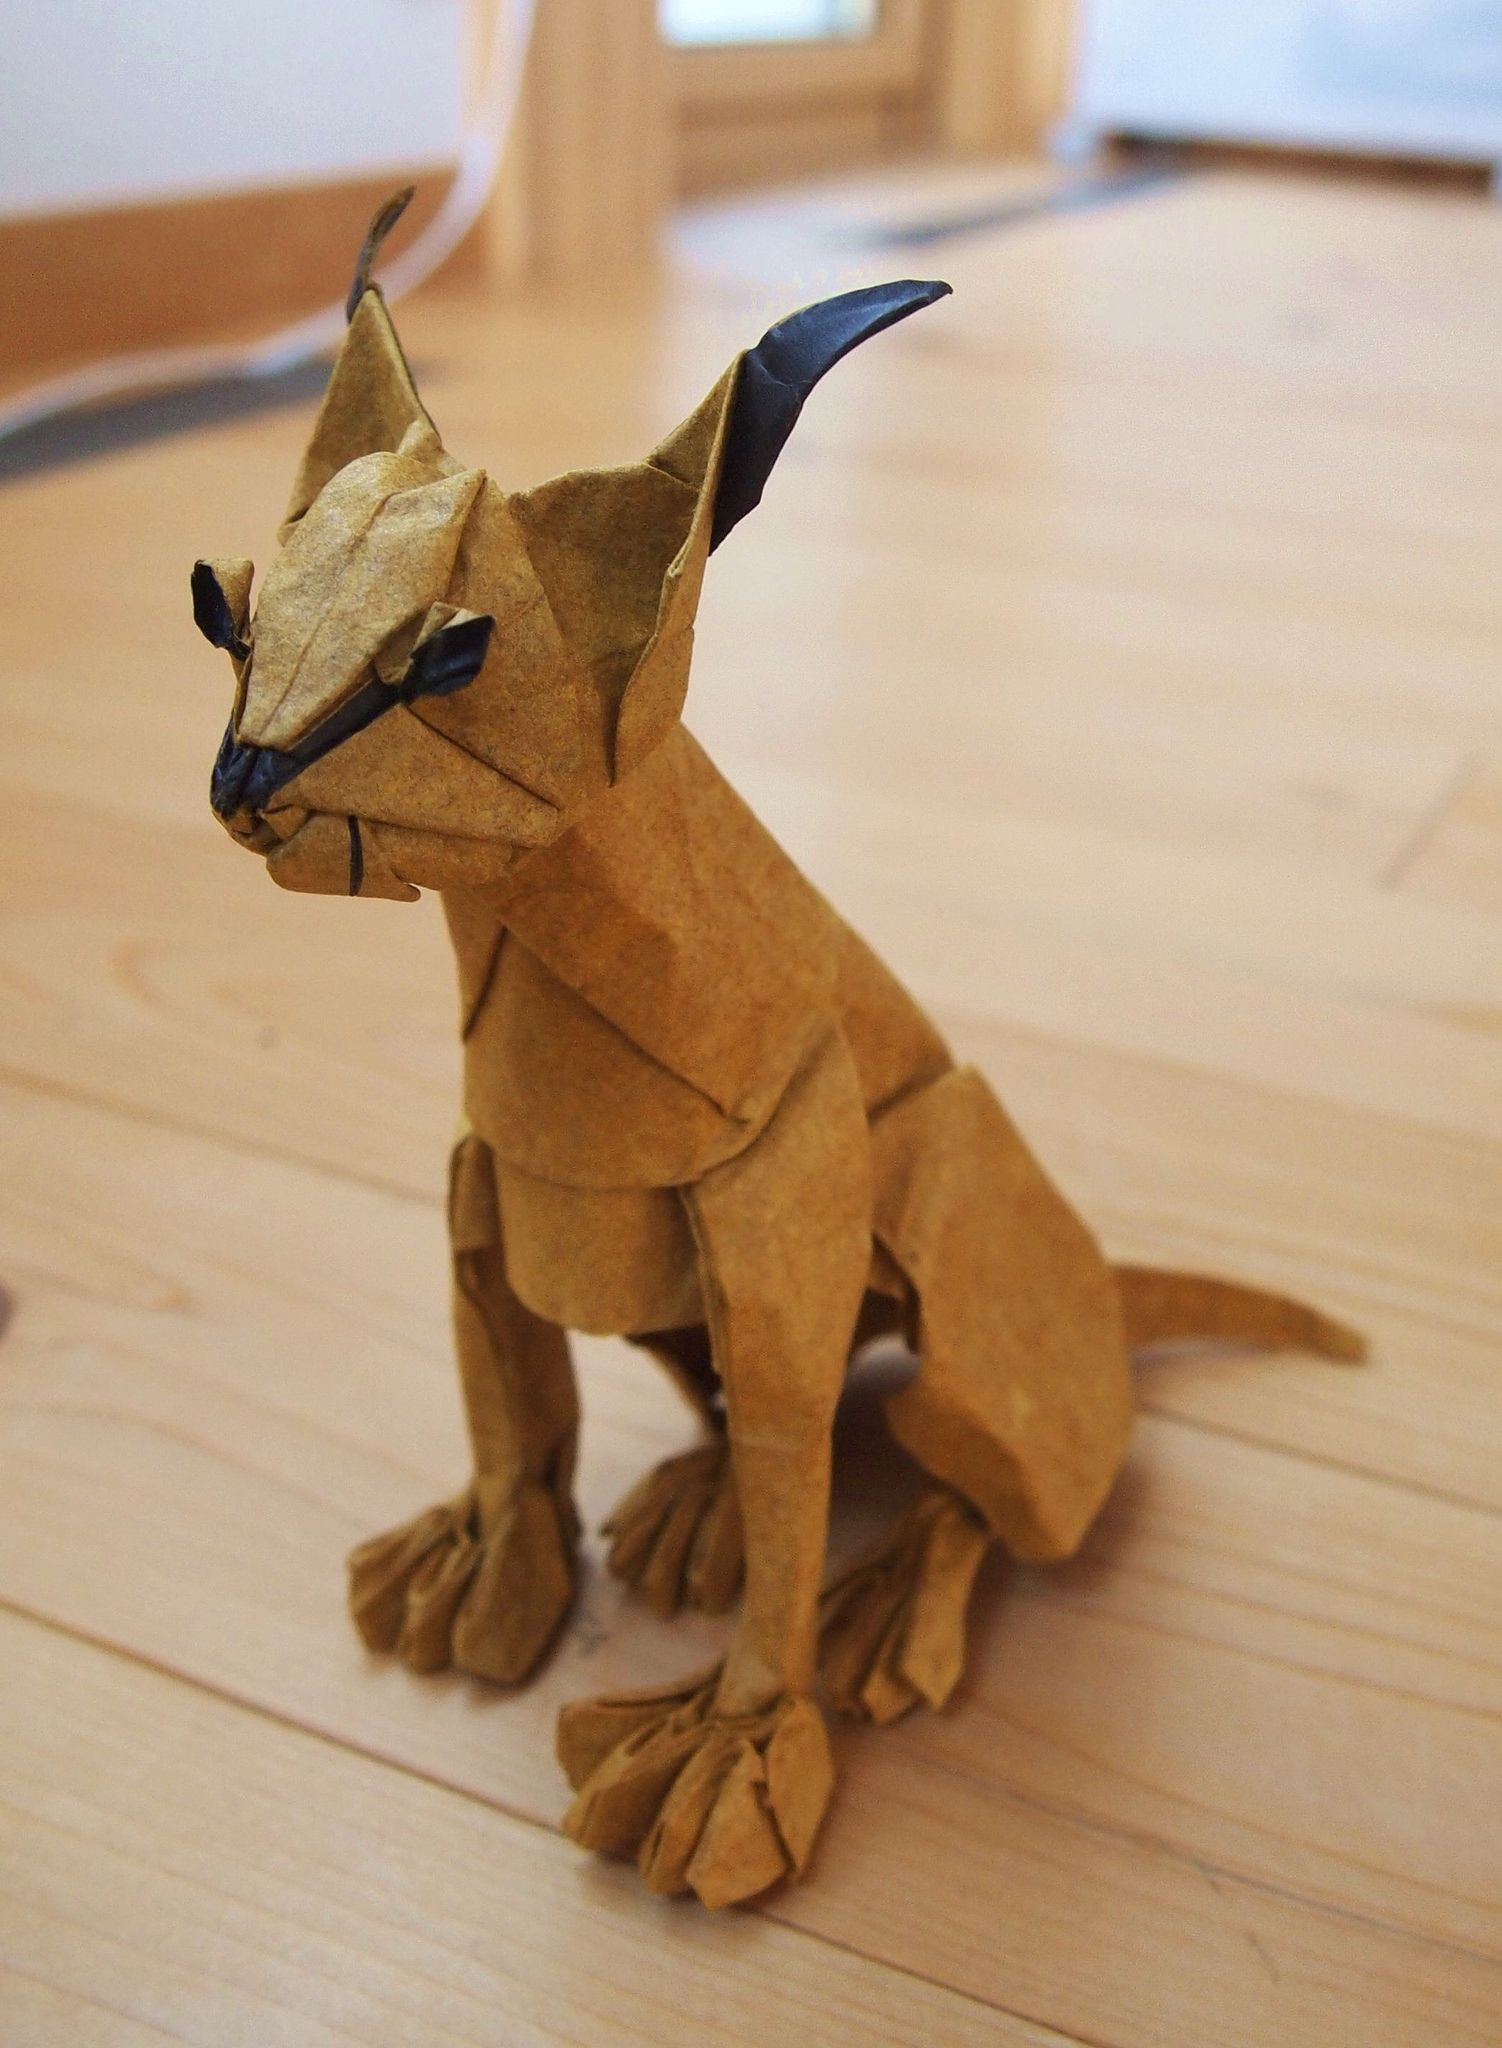 Simple schemes for the addition of cats in the technique of origami will help in creating crafts in this art form